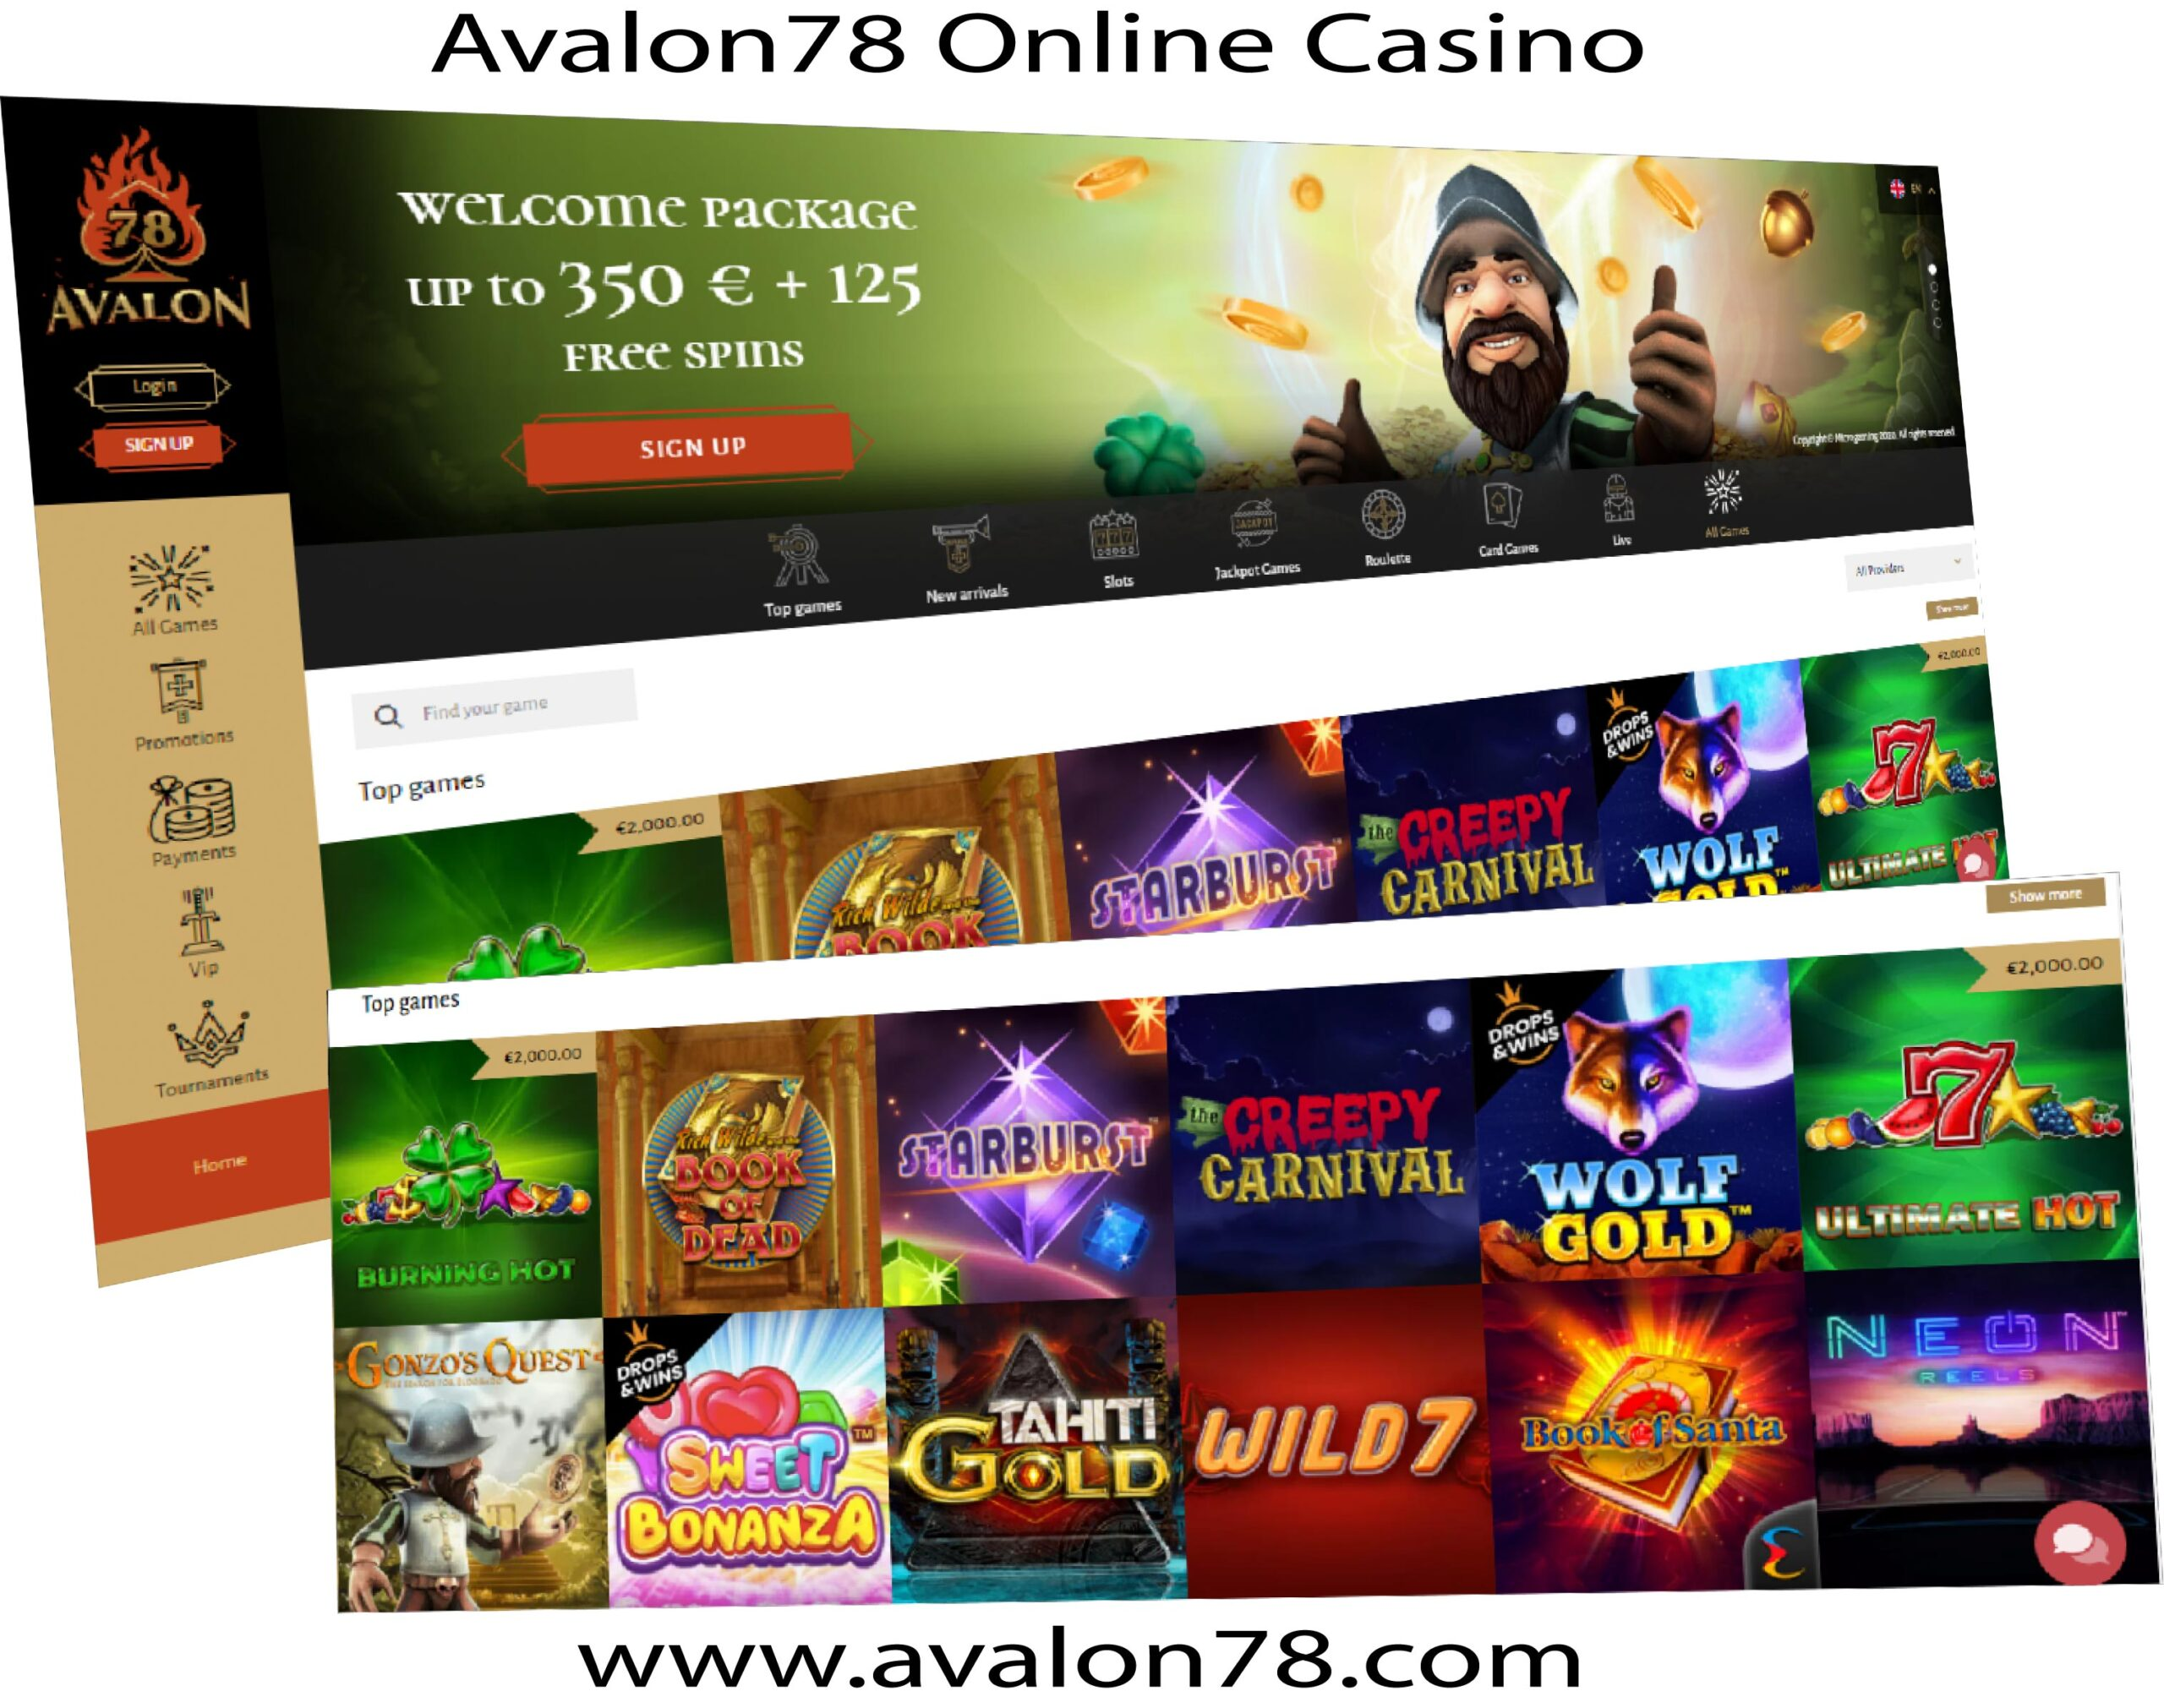 Online Casino Games at Avalon